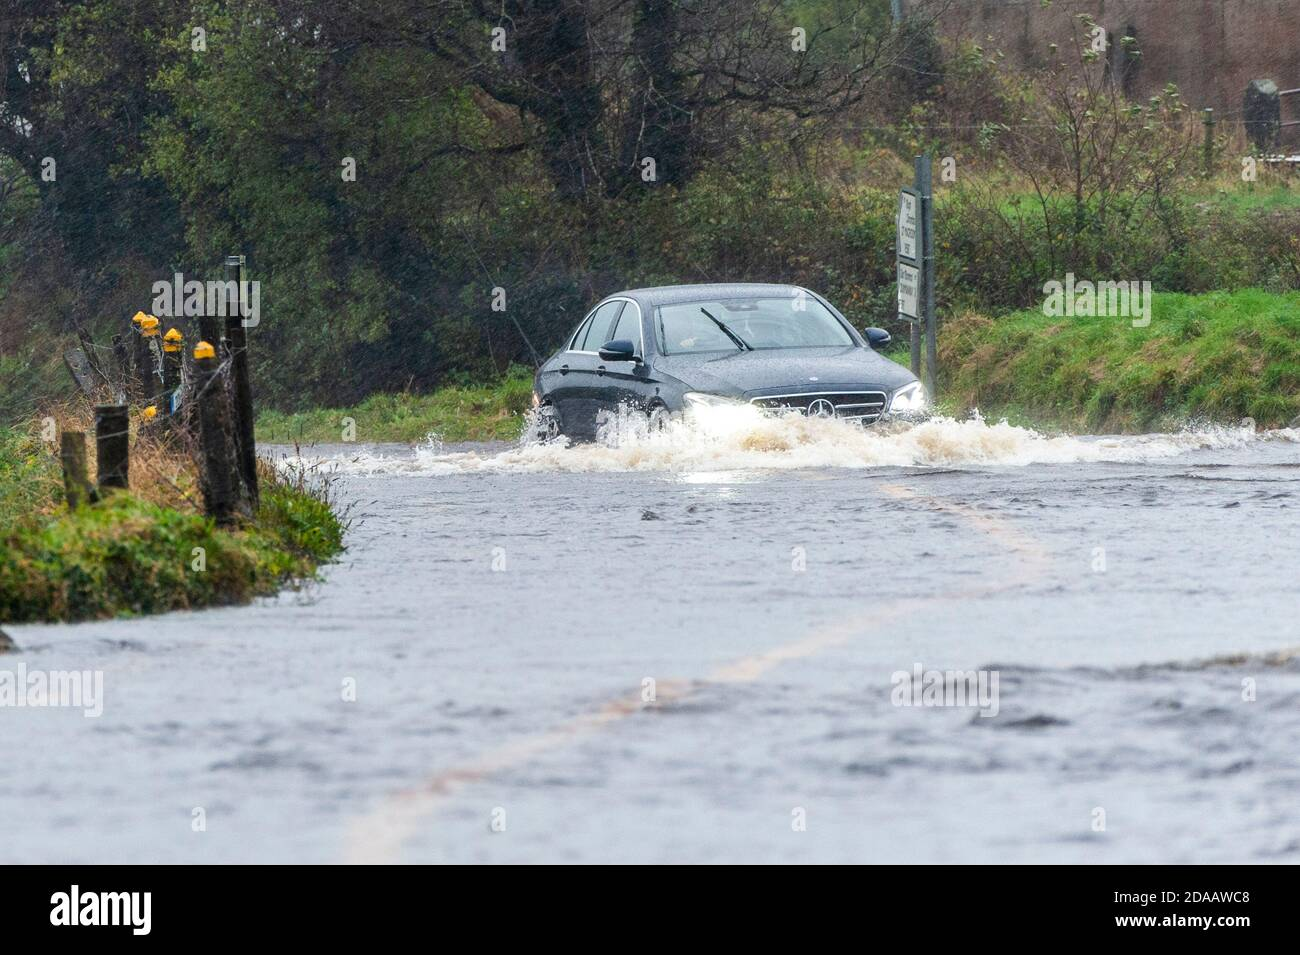 dunmanway-west-cork-ireland-11th-nov-2020-after-a-night-and-morning-of-torrential-rain-the-r587-flooded-just-outside-dunmanway-today-the-flooding-comes-in-the-midst-of-a-met-ireann-yellow-weather-warning-for-county-cork-which-is-in-place-until-6pm-this-evening-credit-ag-newsalamy-live-news-2DAAWC8.jpg